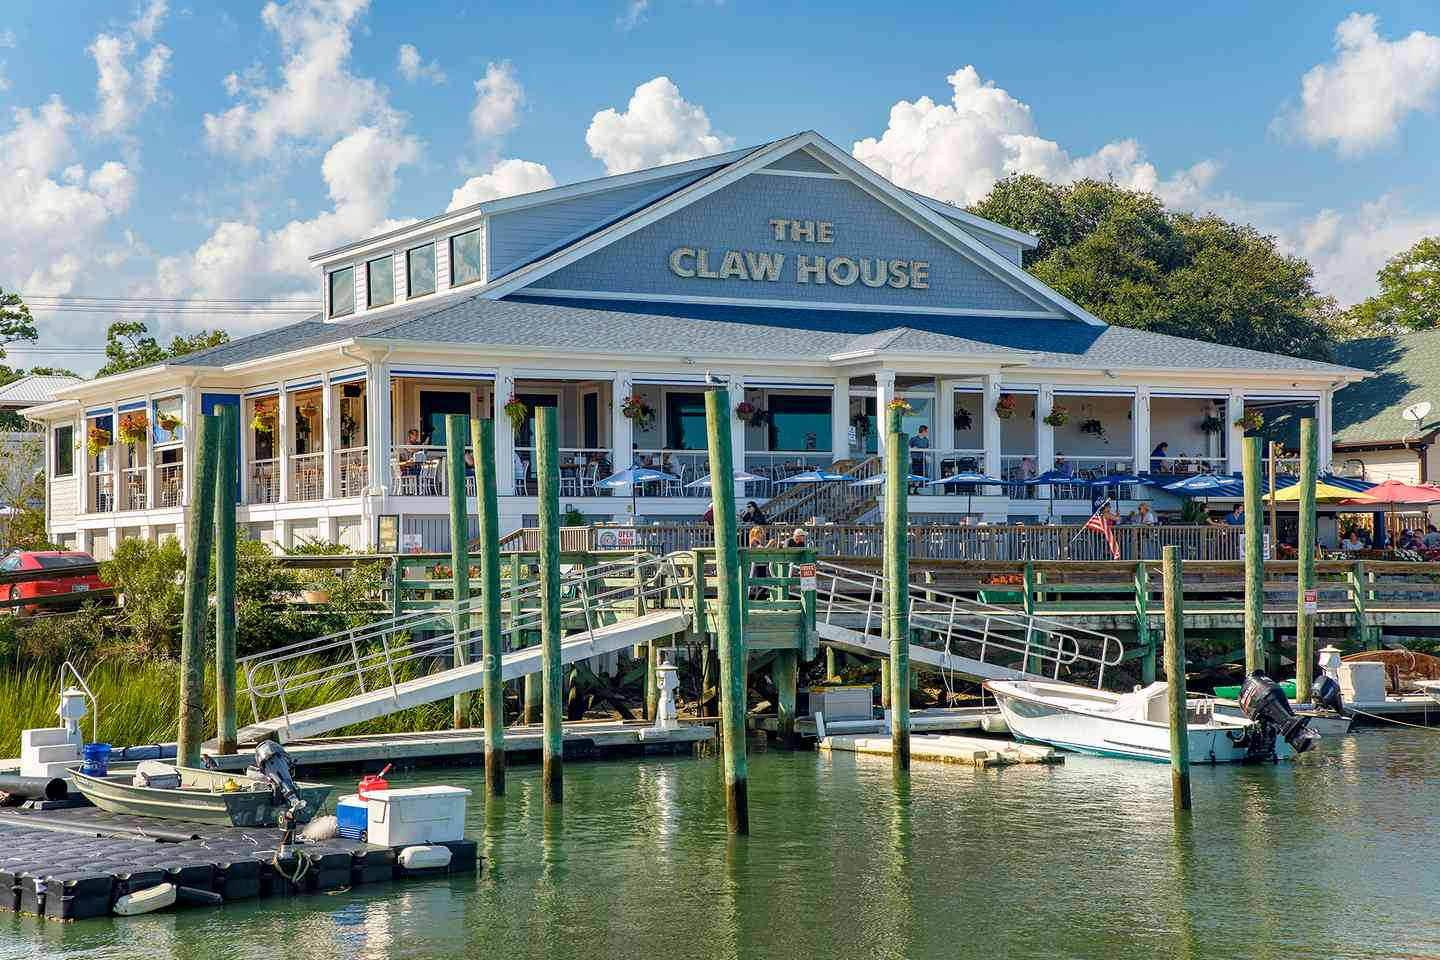 Lake front view of the Claw House